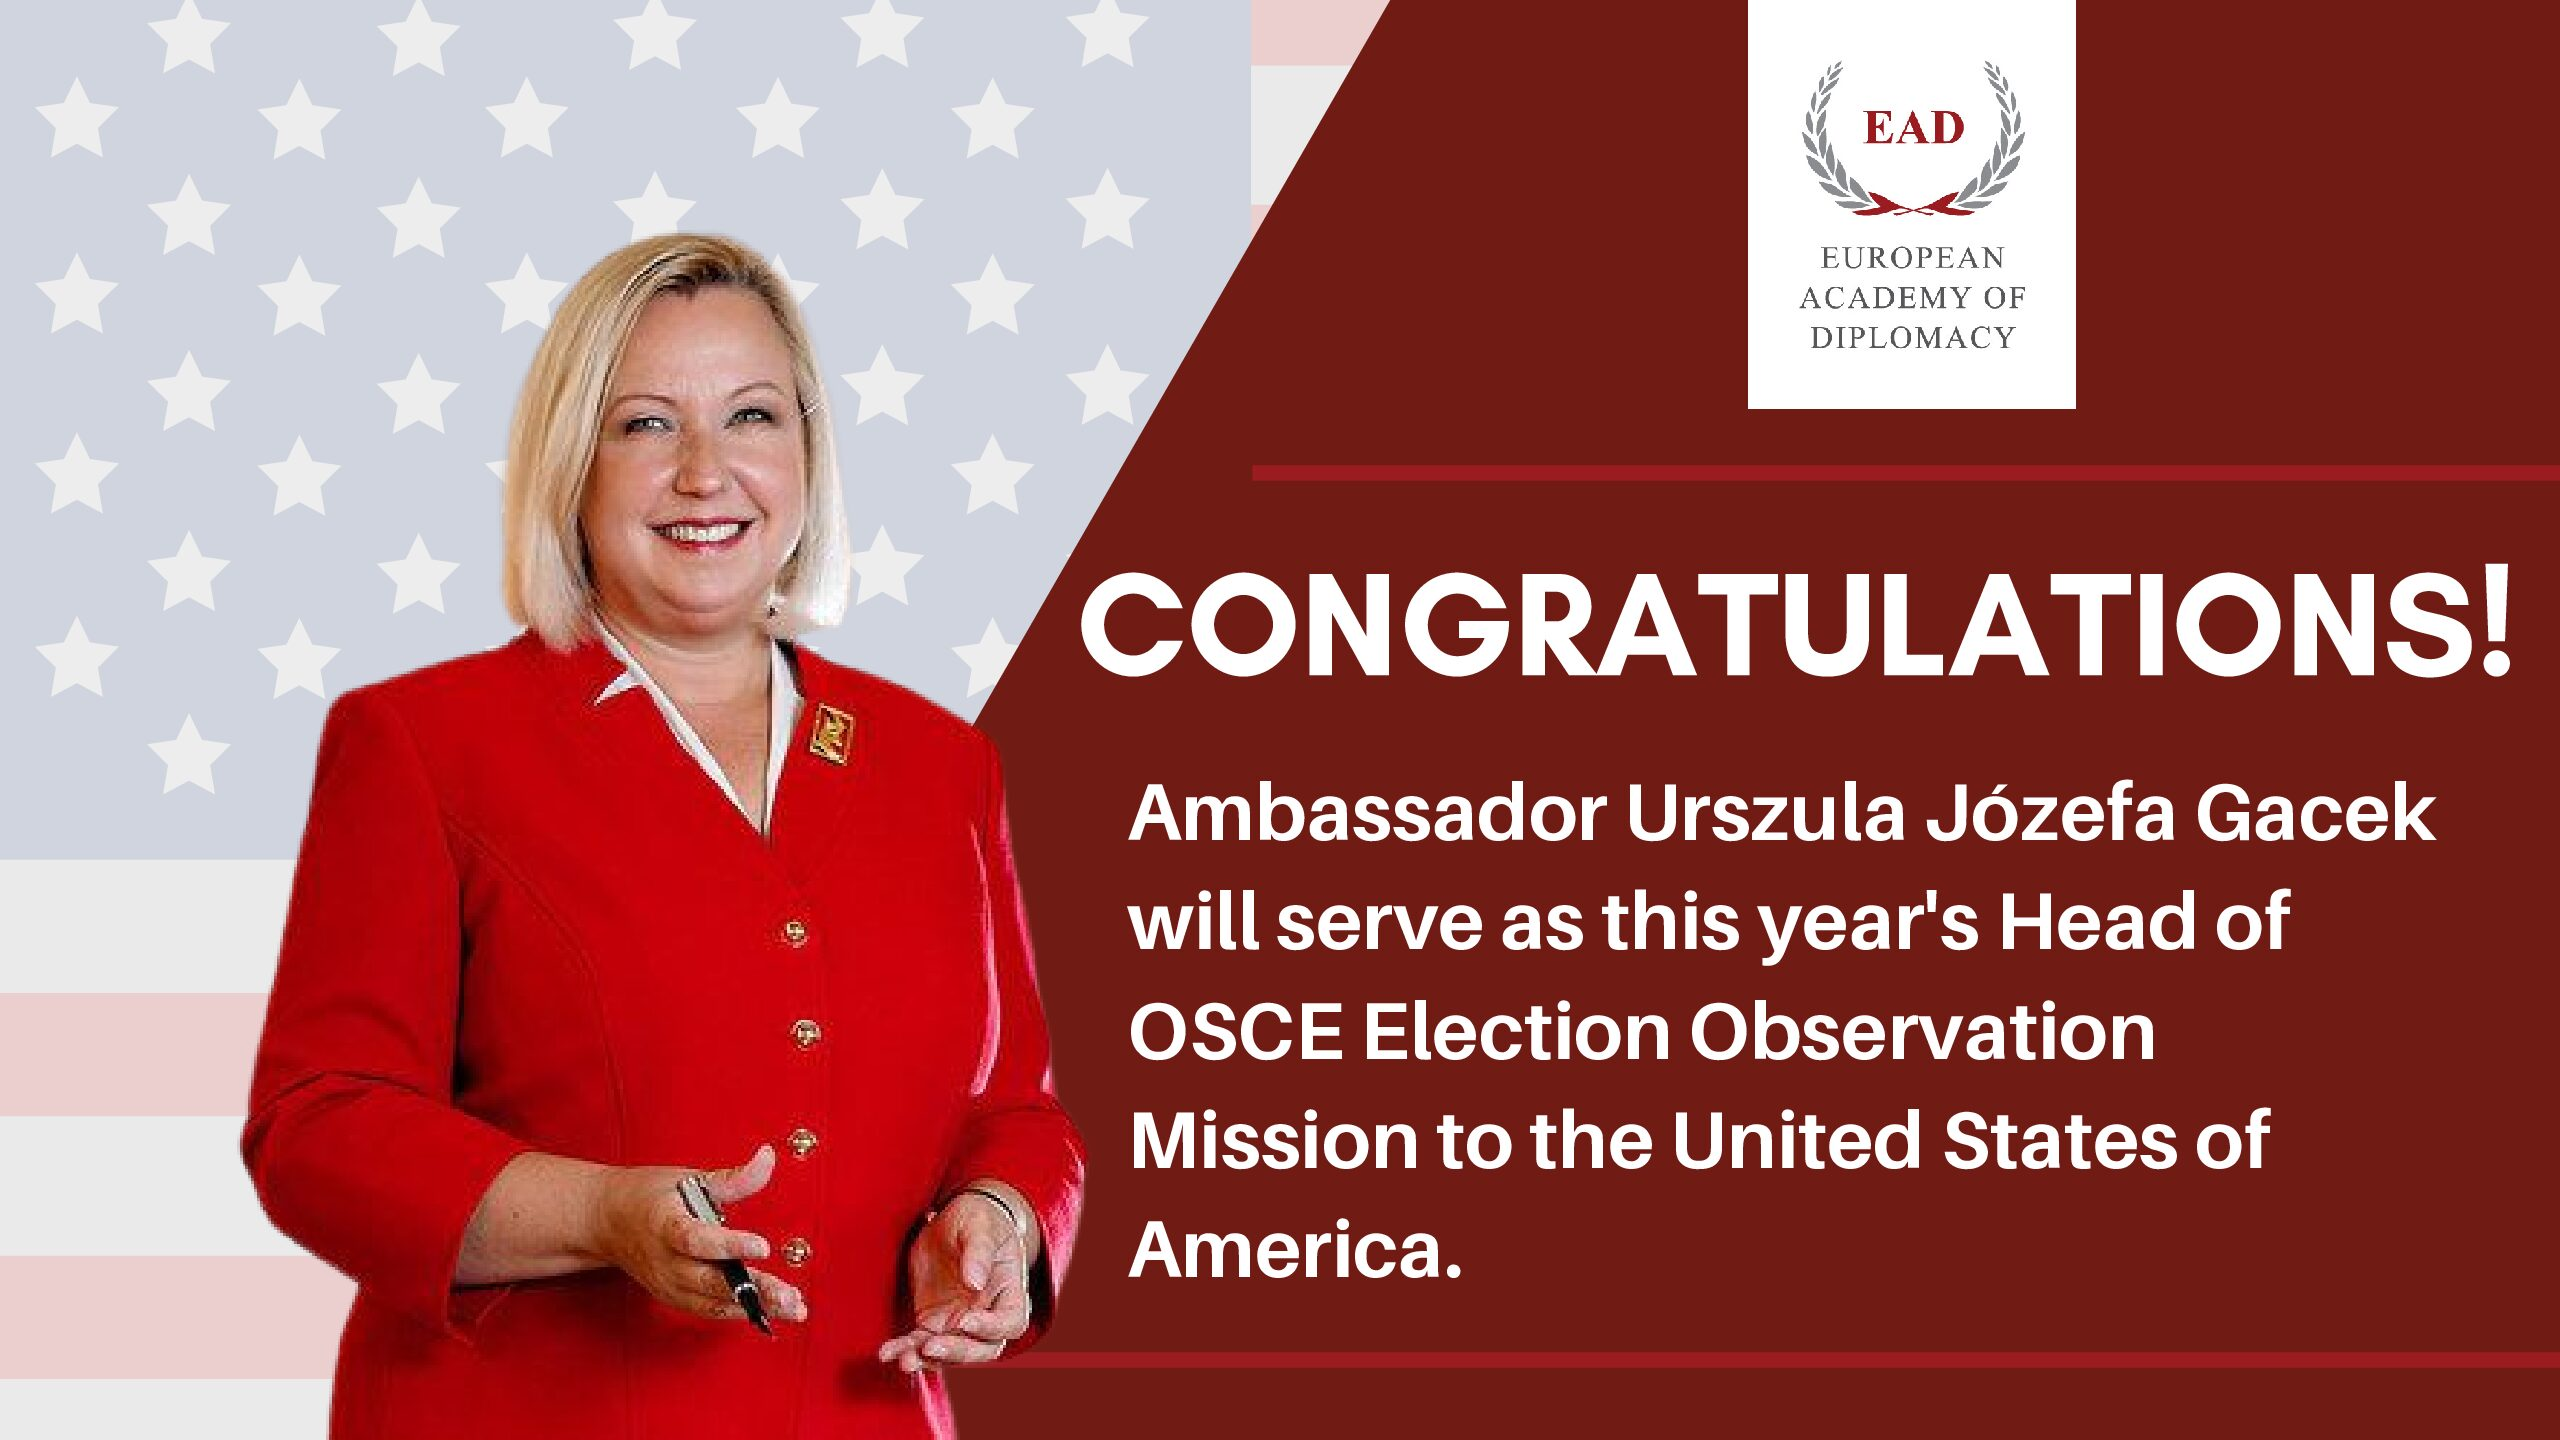 Amb. Urszula Gacek and the Head of the OSCE election Observation Mission to the United States